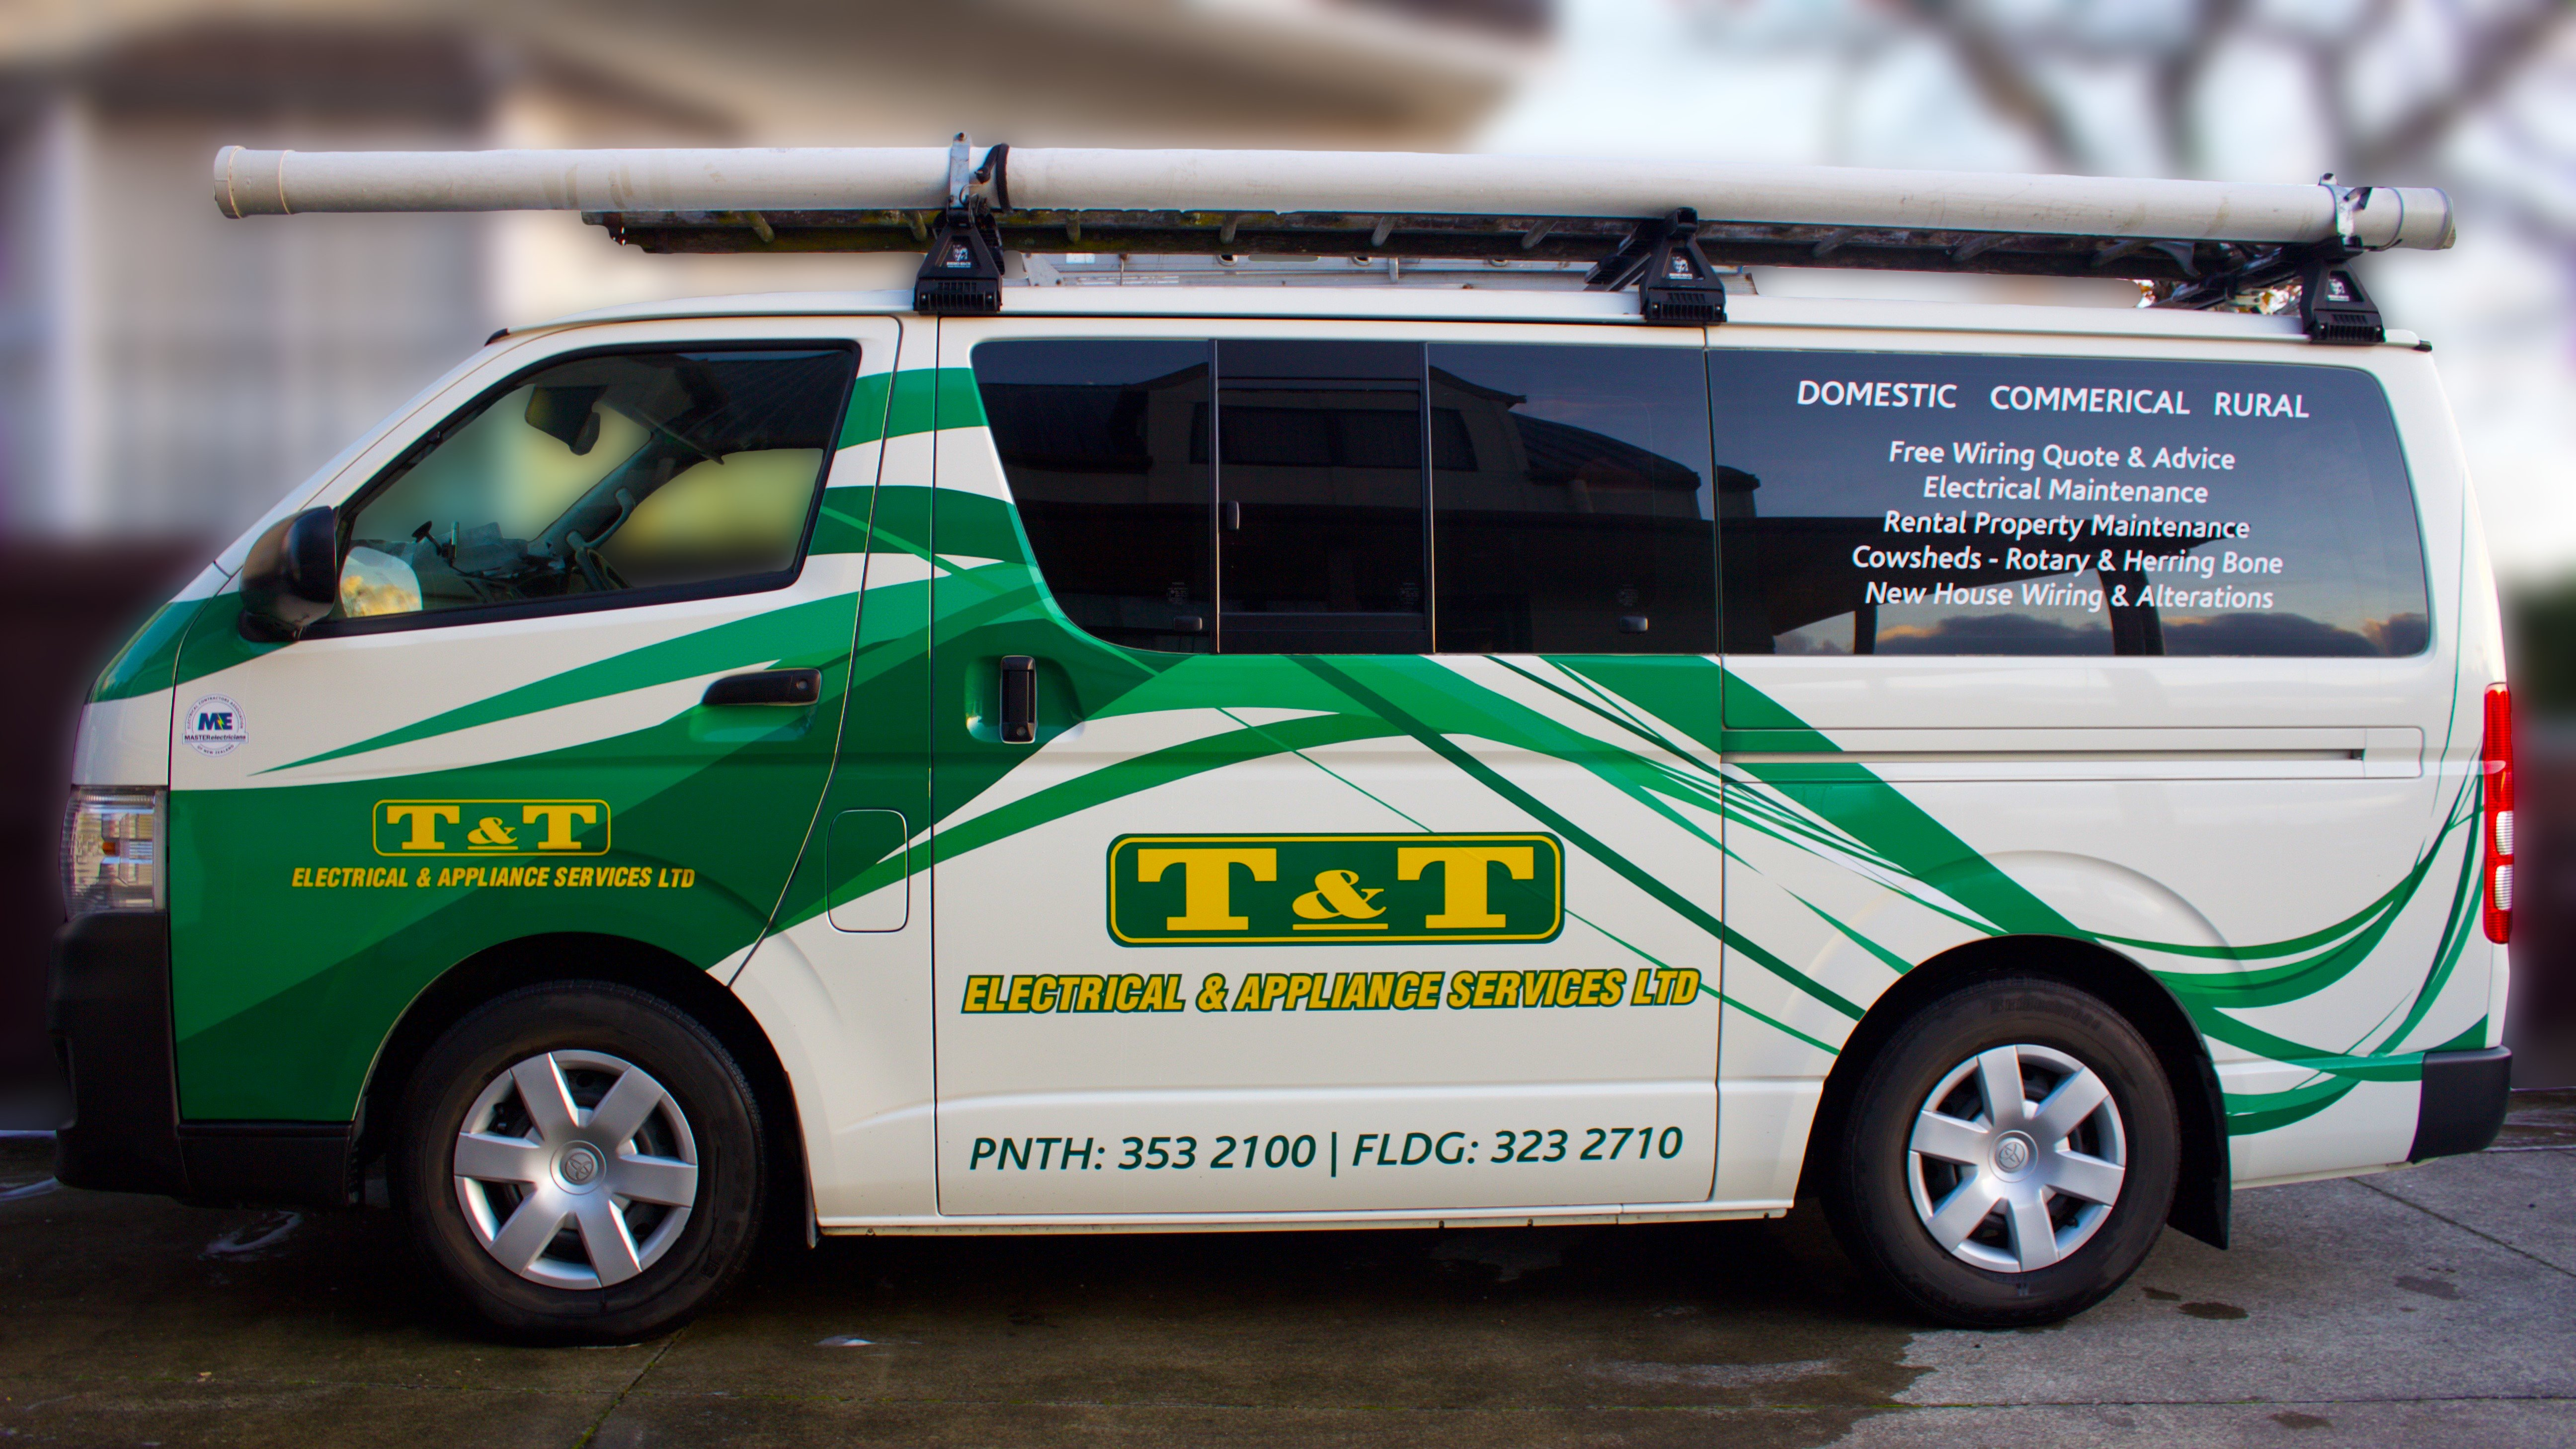 Reliable services at T & T Electrical Appliance Services Ltd